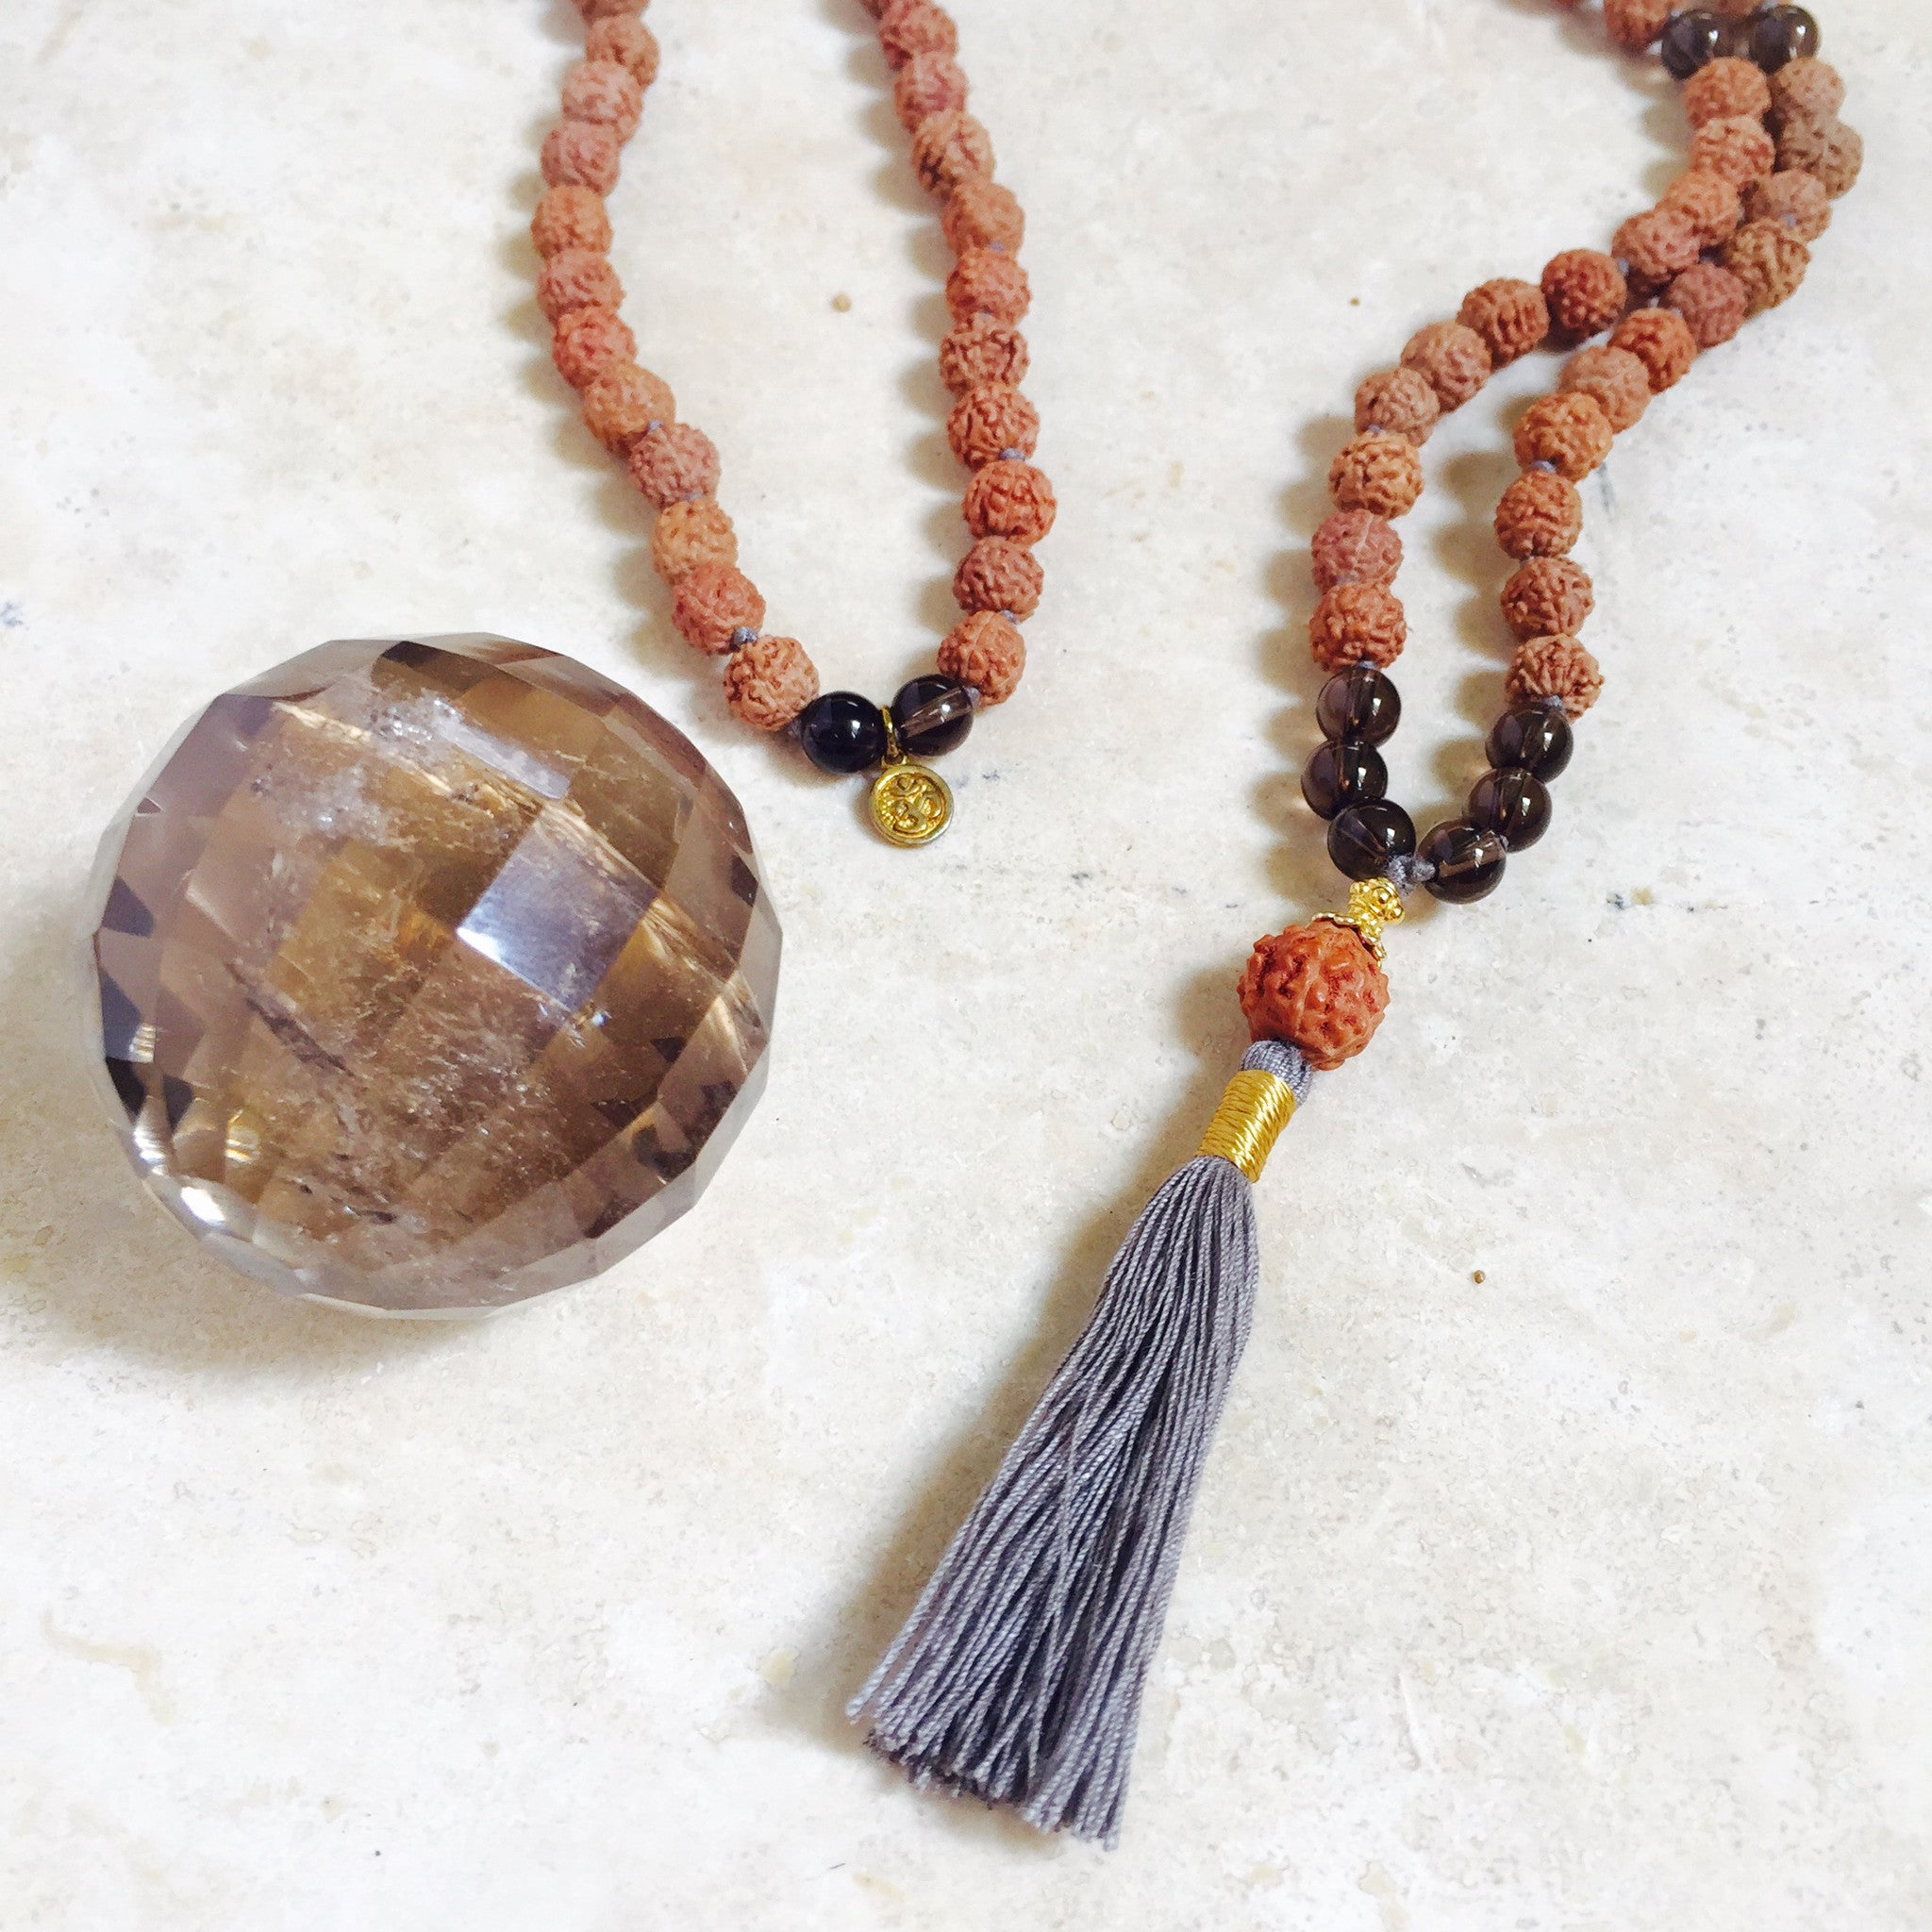 gemstone aventurine necklaces necklace nurture wrap beads bead and products jasper balance or bracelet male mala